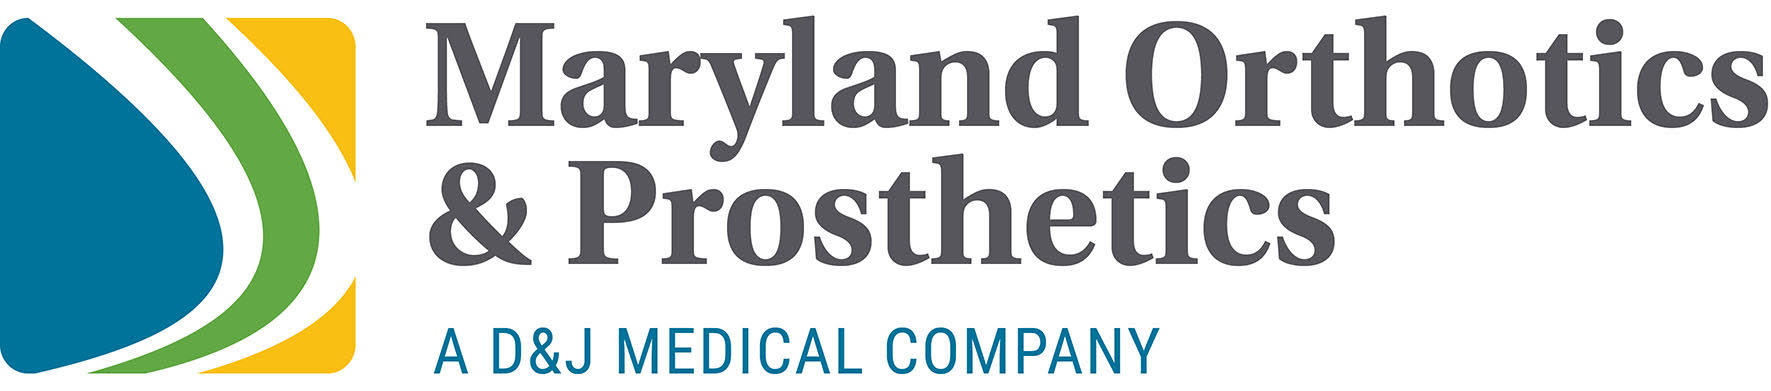 Maryland Orthotics & Prosthetics  Our Organization